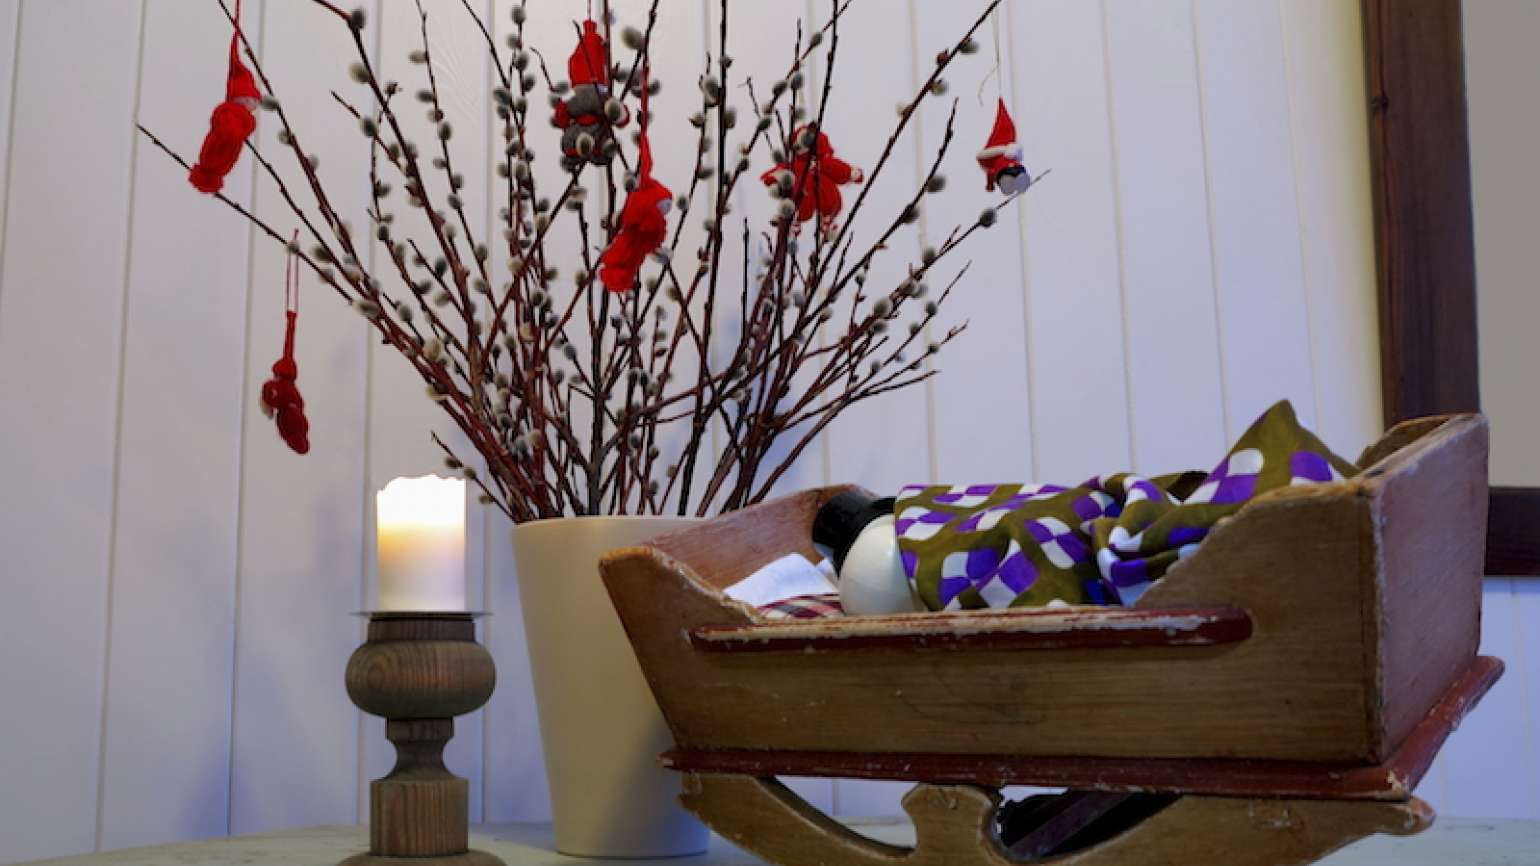 A Christmas cradle. Photo by Rolf Aasa, Thinkstock.